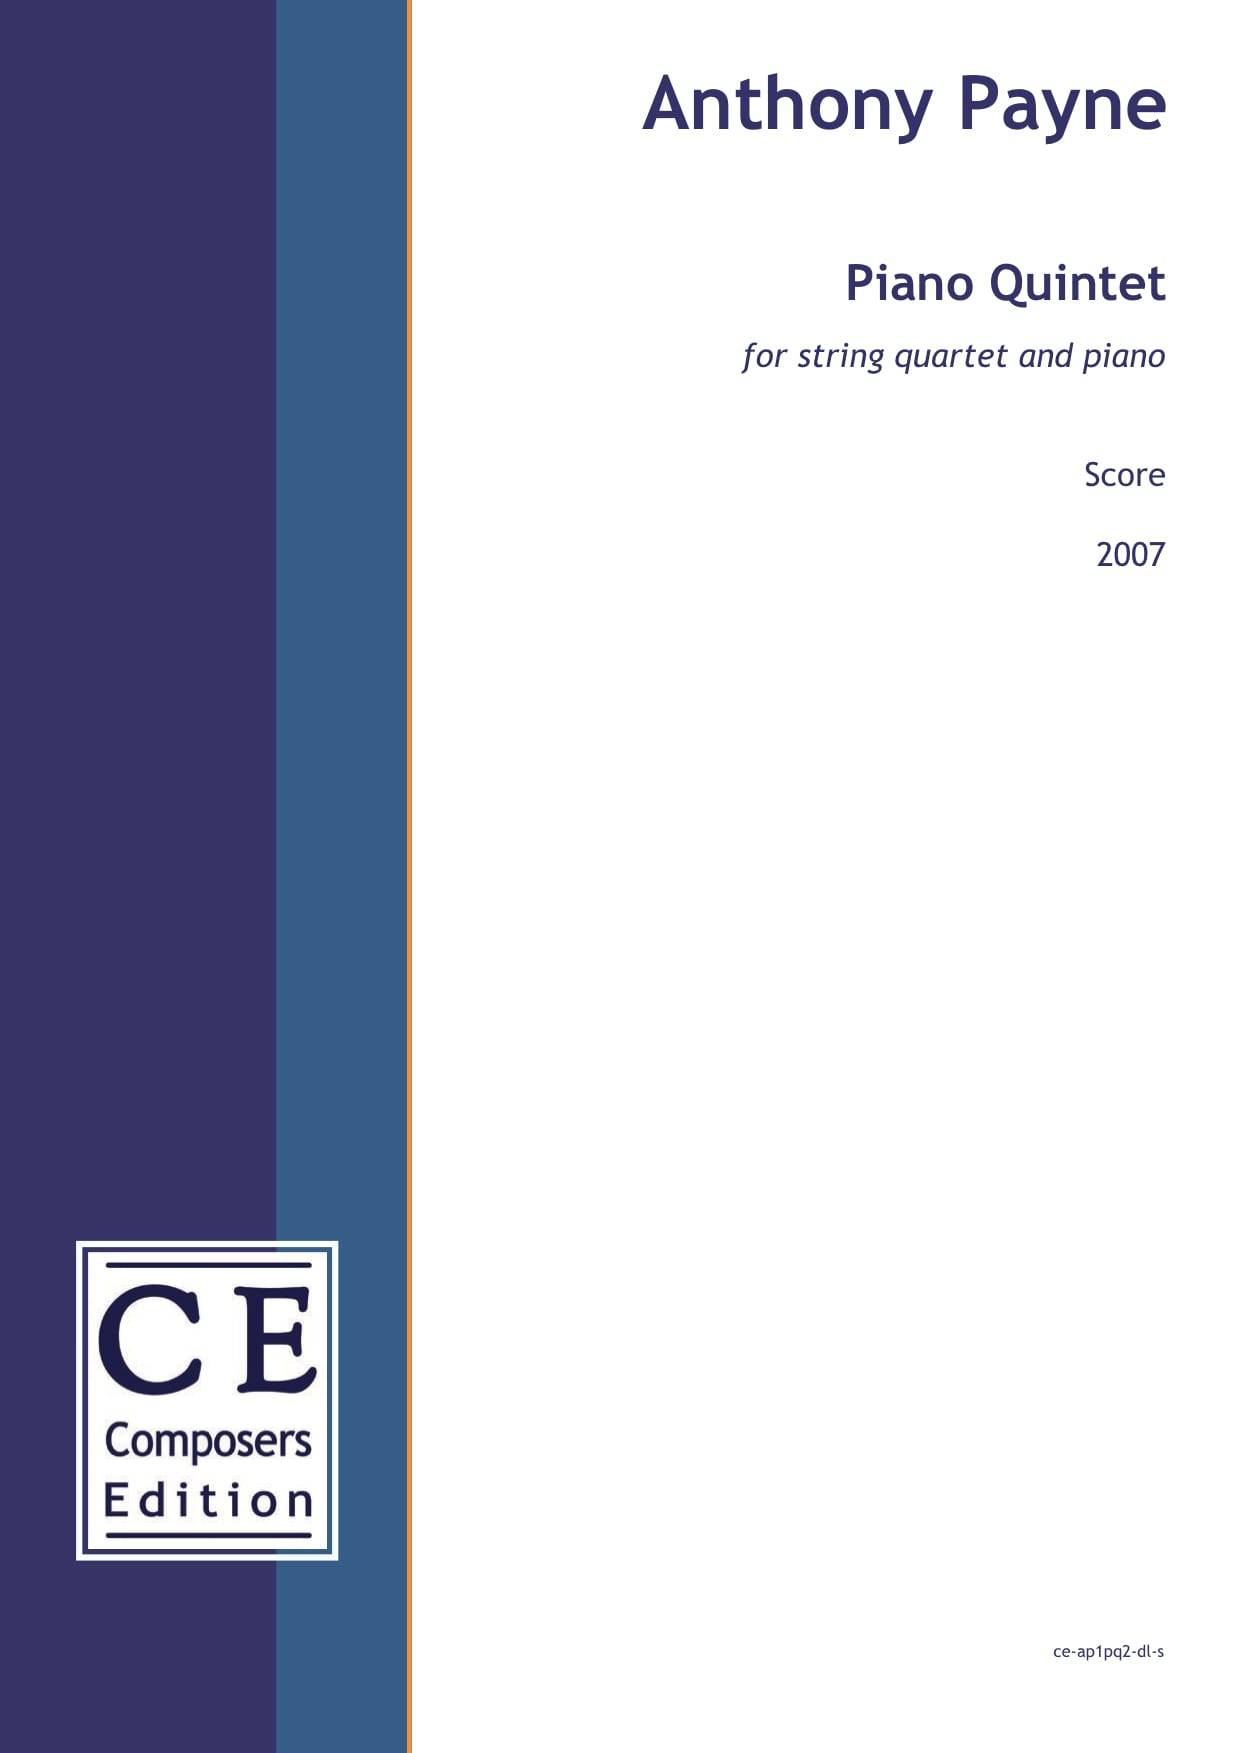 Anthony Payne: Piano Quintet for string quartet and piano